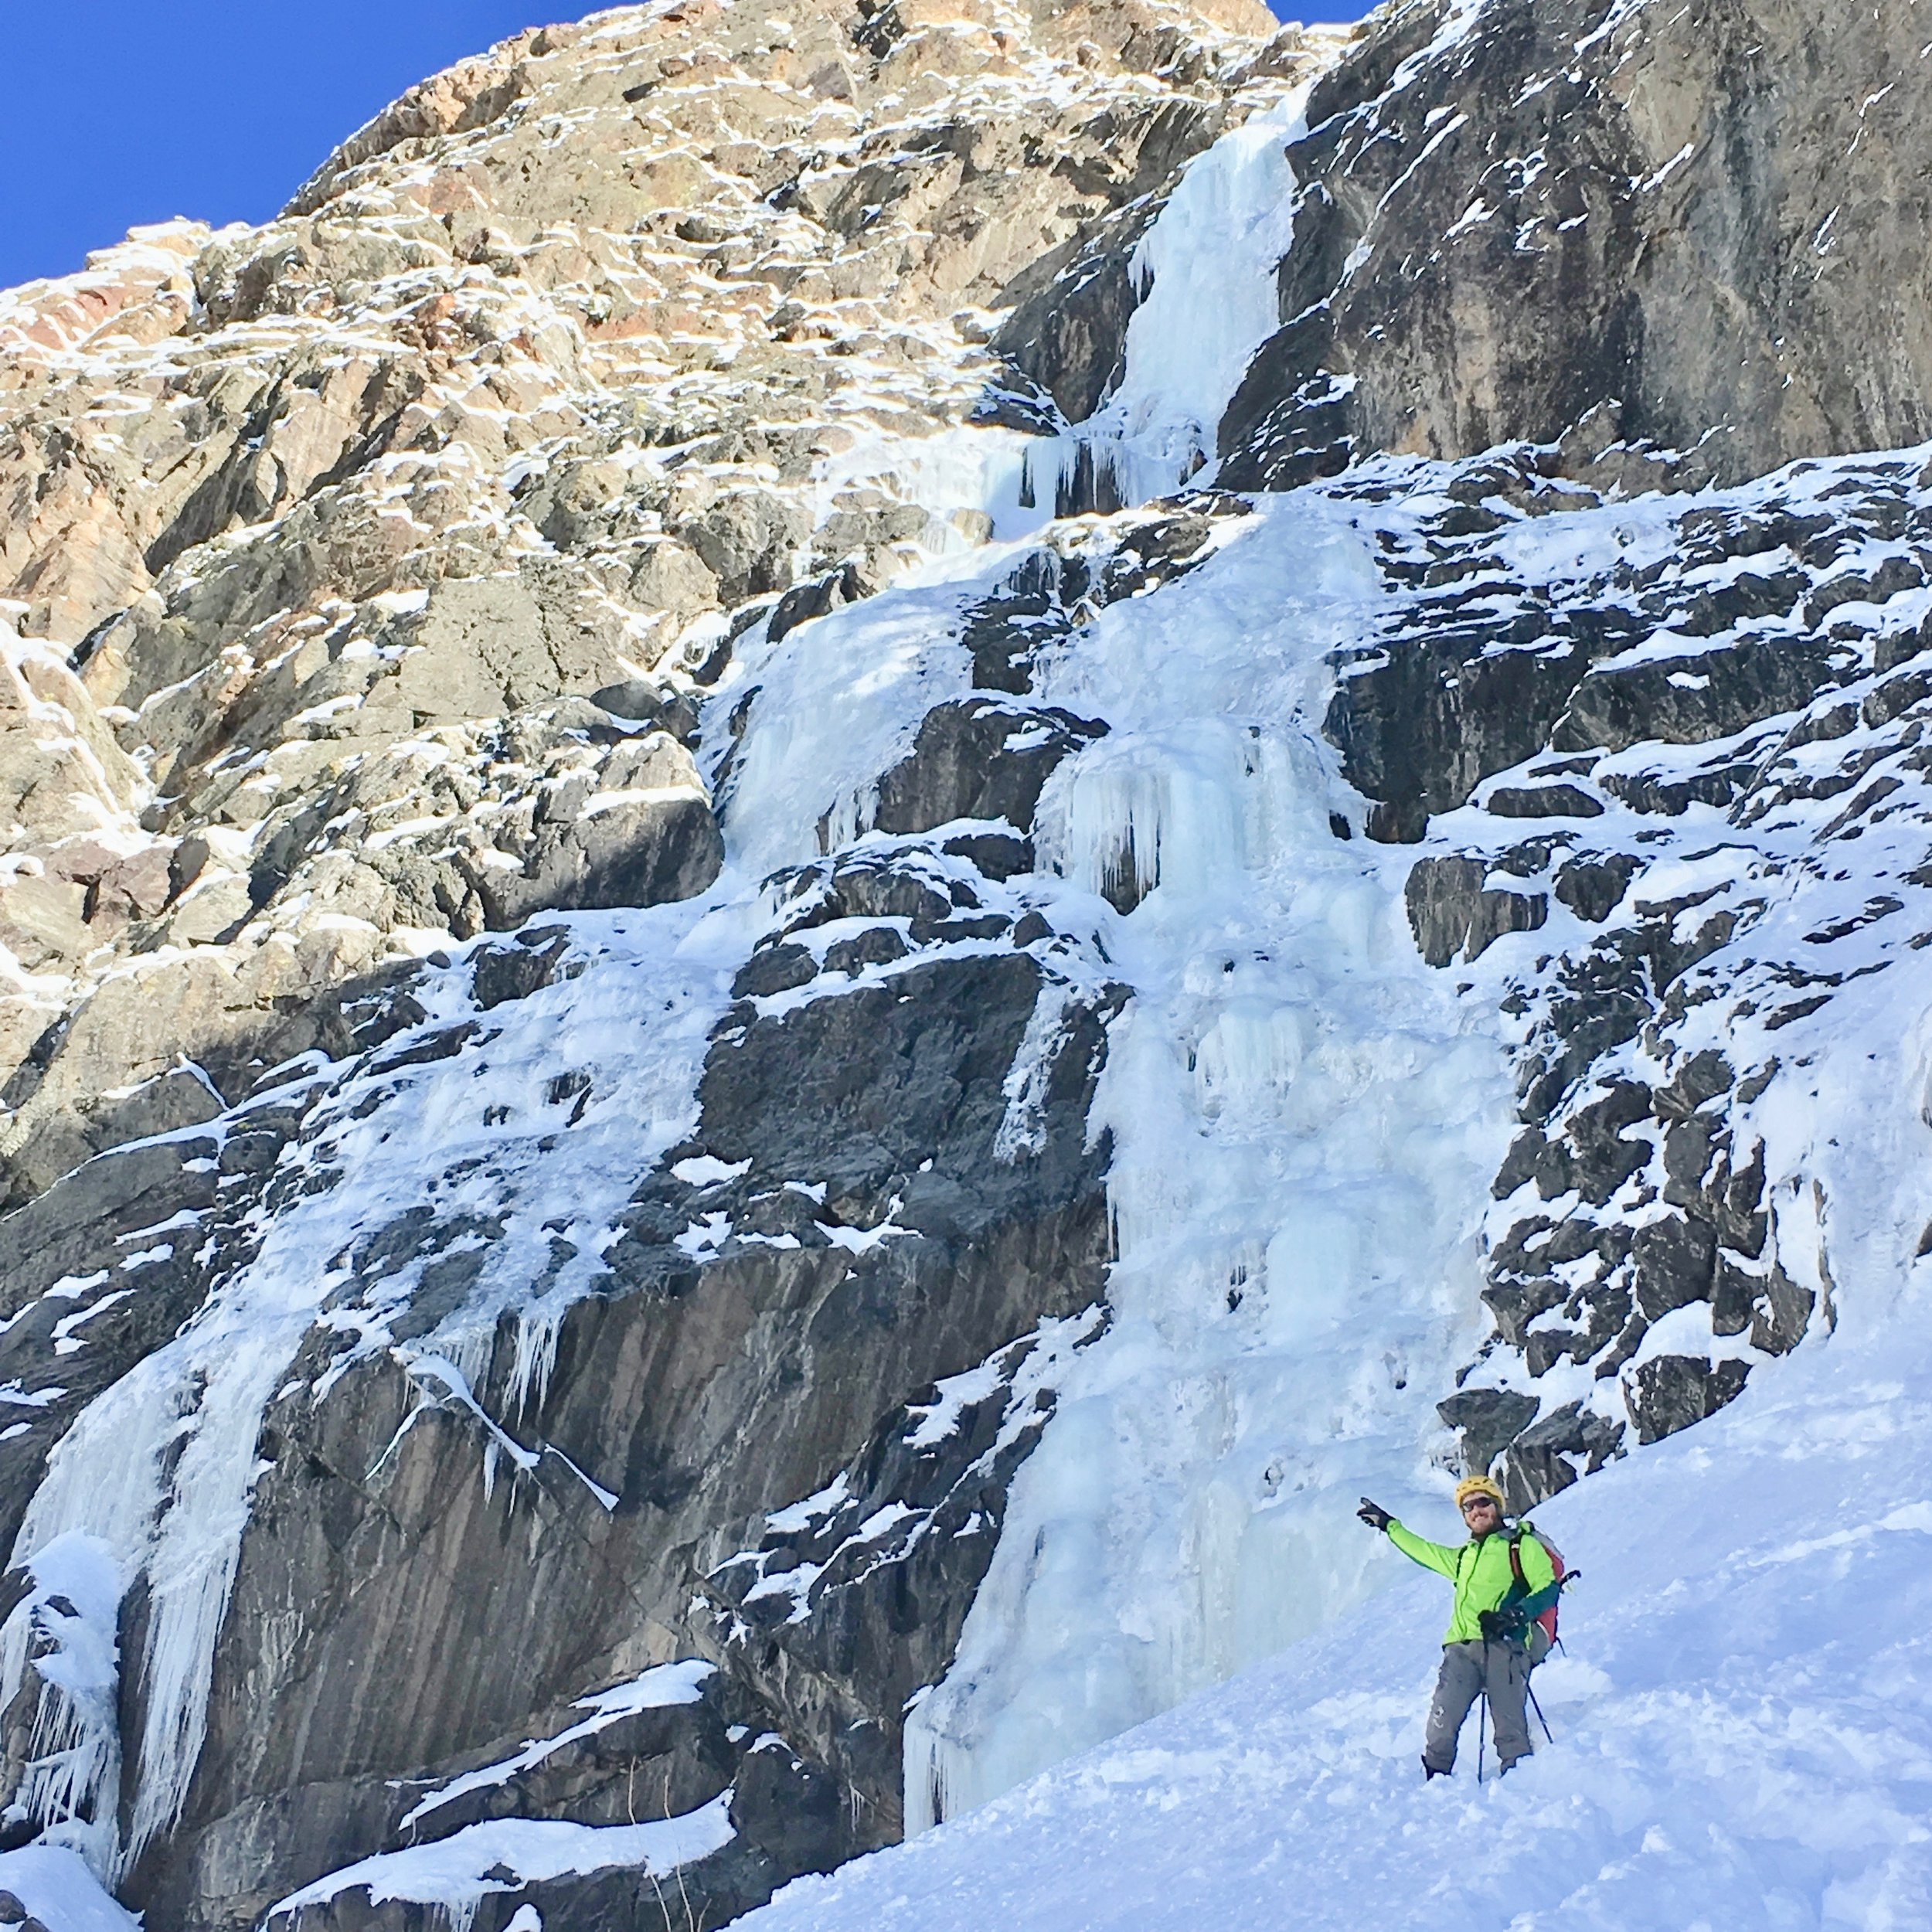 Looking back up the route. Each pitch was nearly 200', and we managed to get back to the base before the sun hit. Great success!